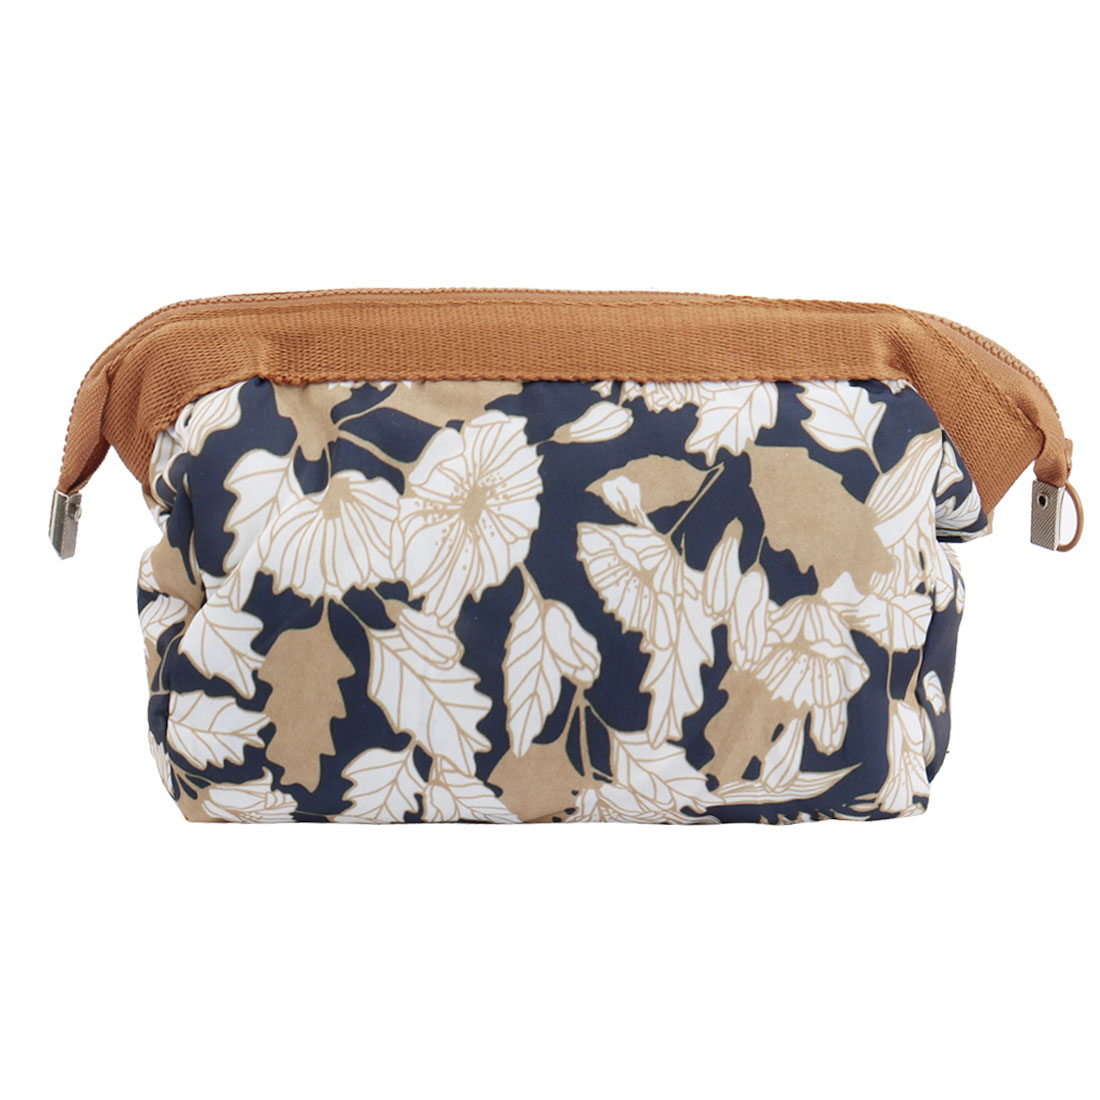 Travel Cosmetic Makeup Bag Wash Bag Organizer Pouch Toiletry Purse Case Brown